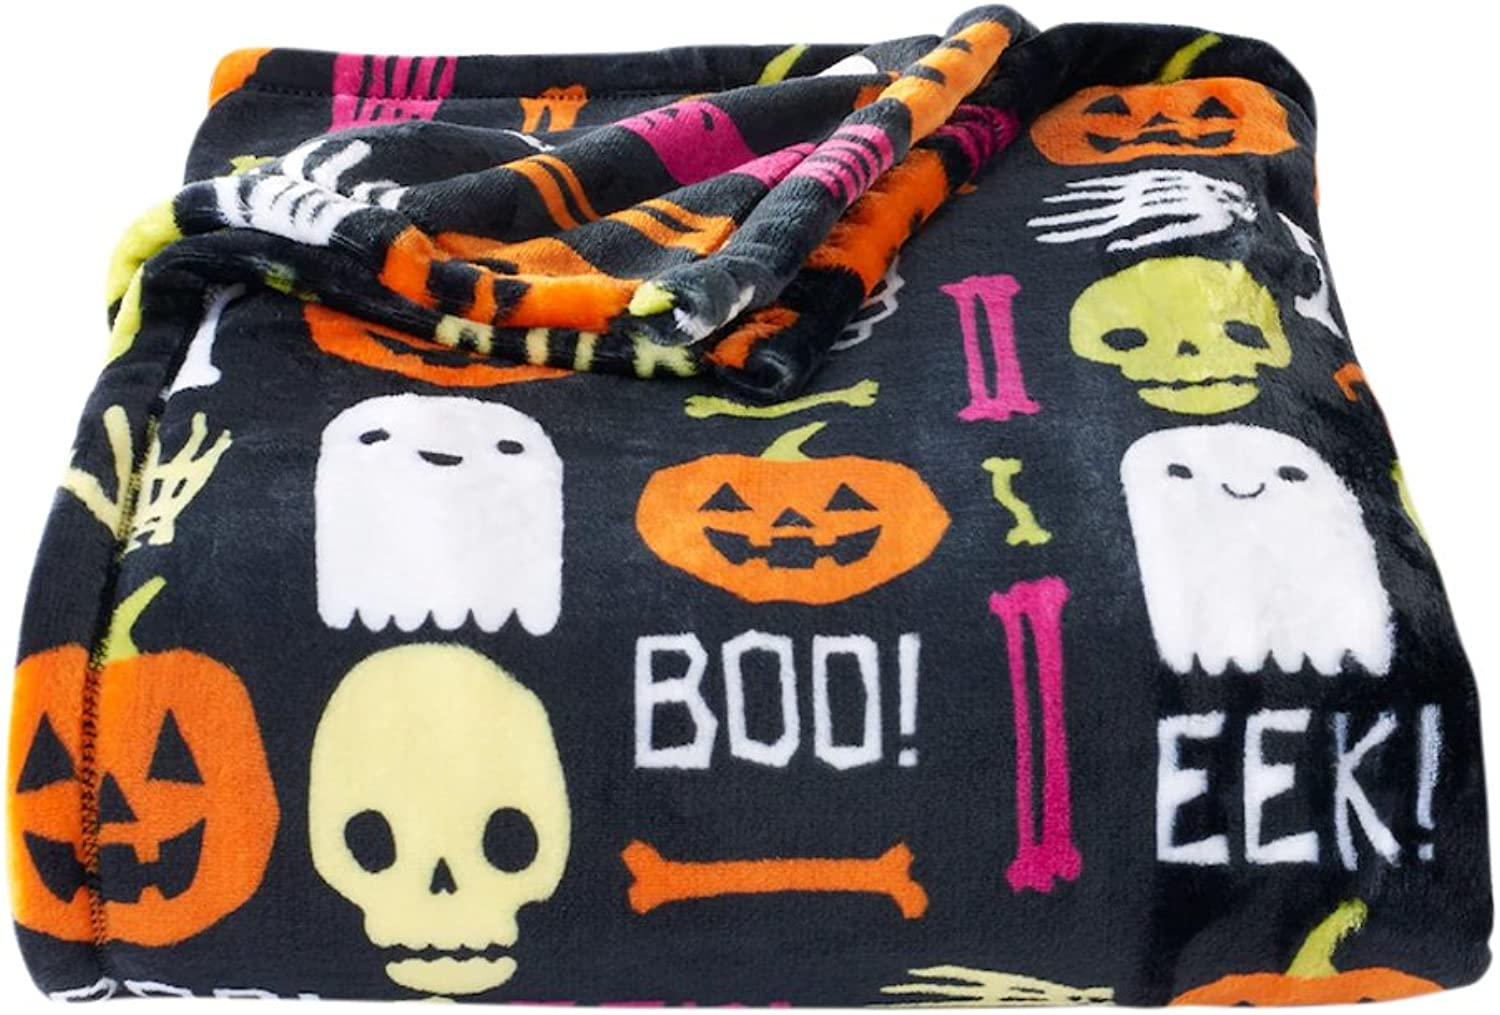 Oversized Throw Blanket Super Soft and Cozy Plush 60 x 72 (Halloween)